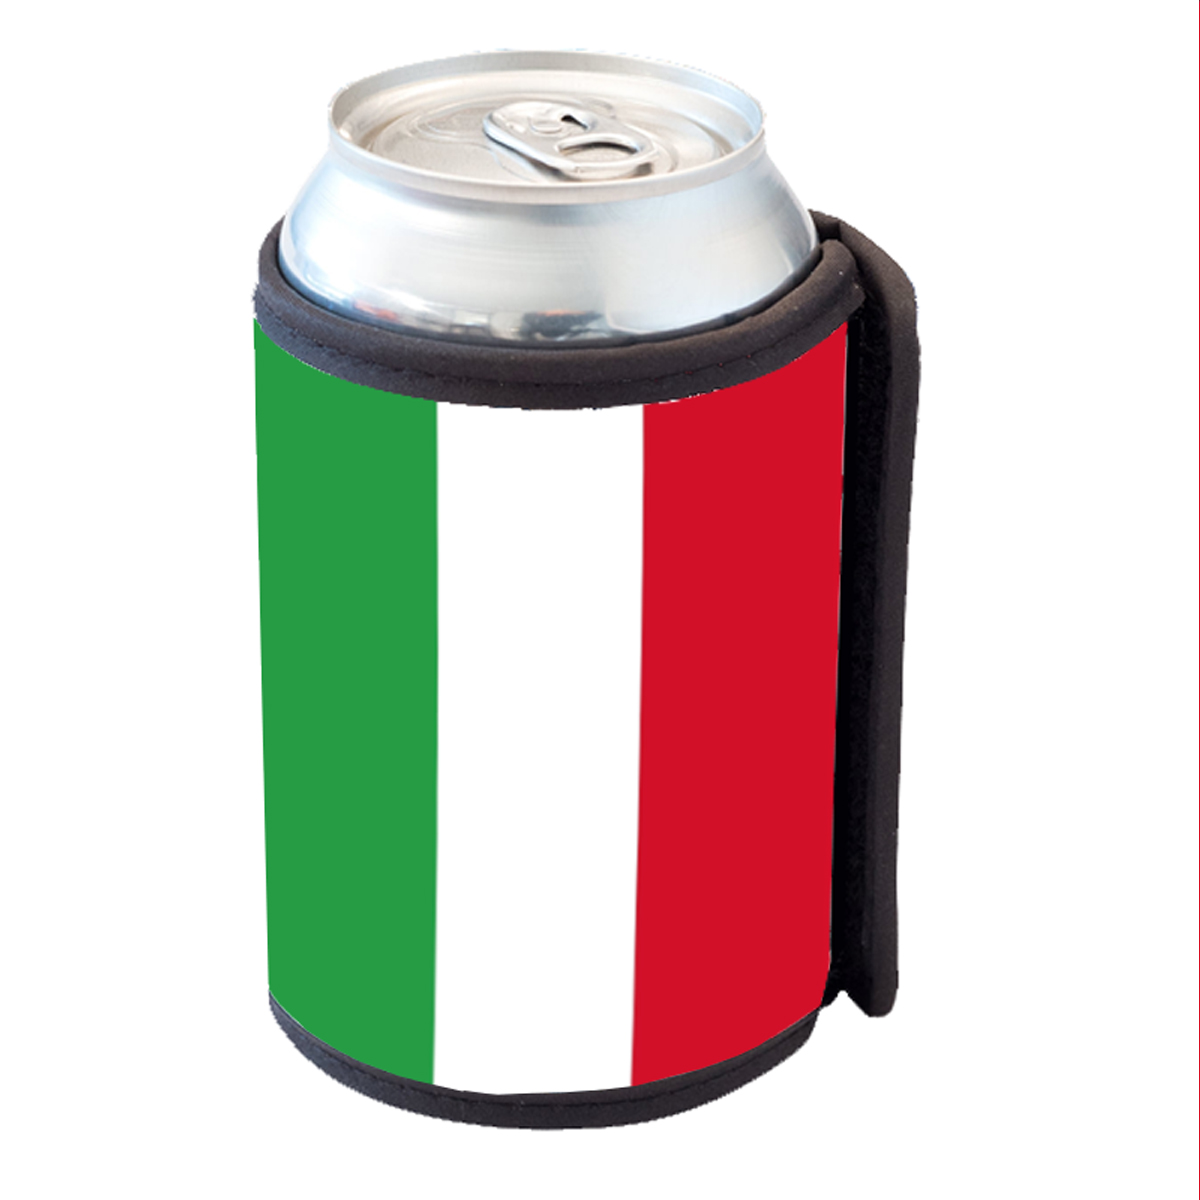 KuzmarK Insulated Drink Can Cooler Hugger - Italian